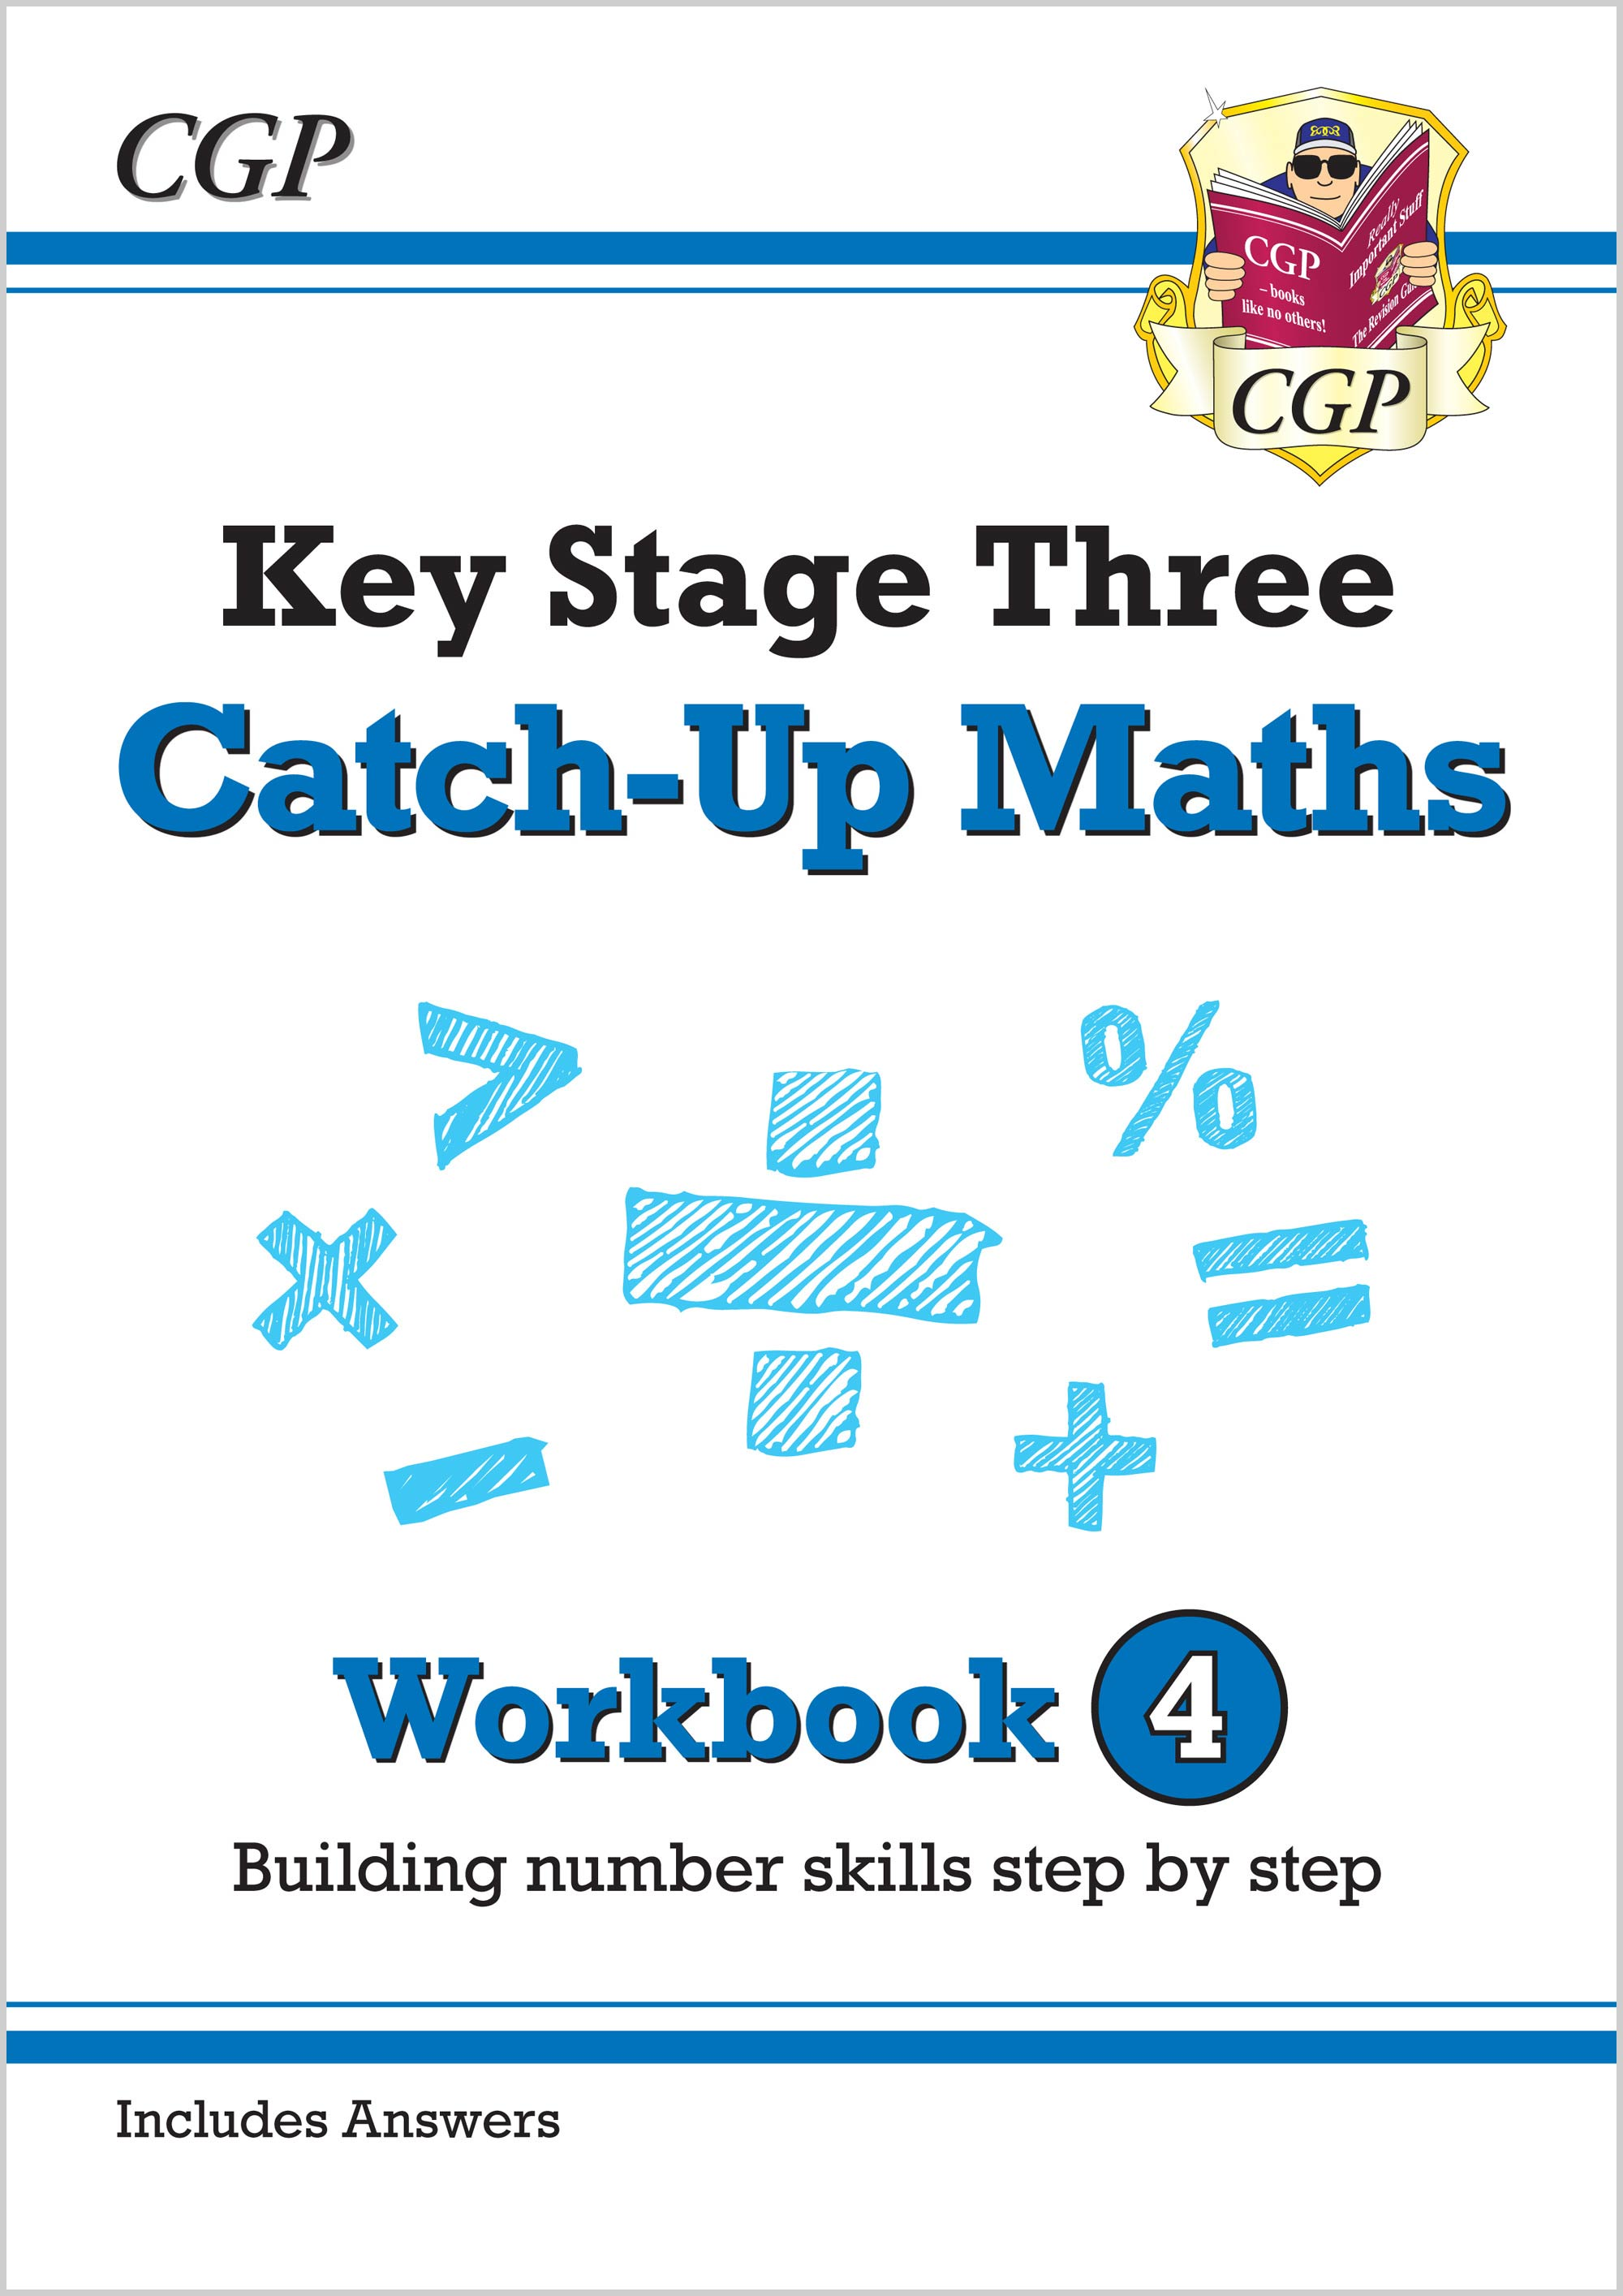 MBNW431 - KS3 Maths Catch-Up Workbook 4 (with Answers)